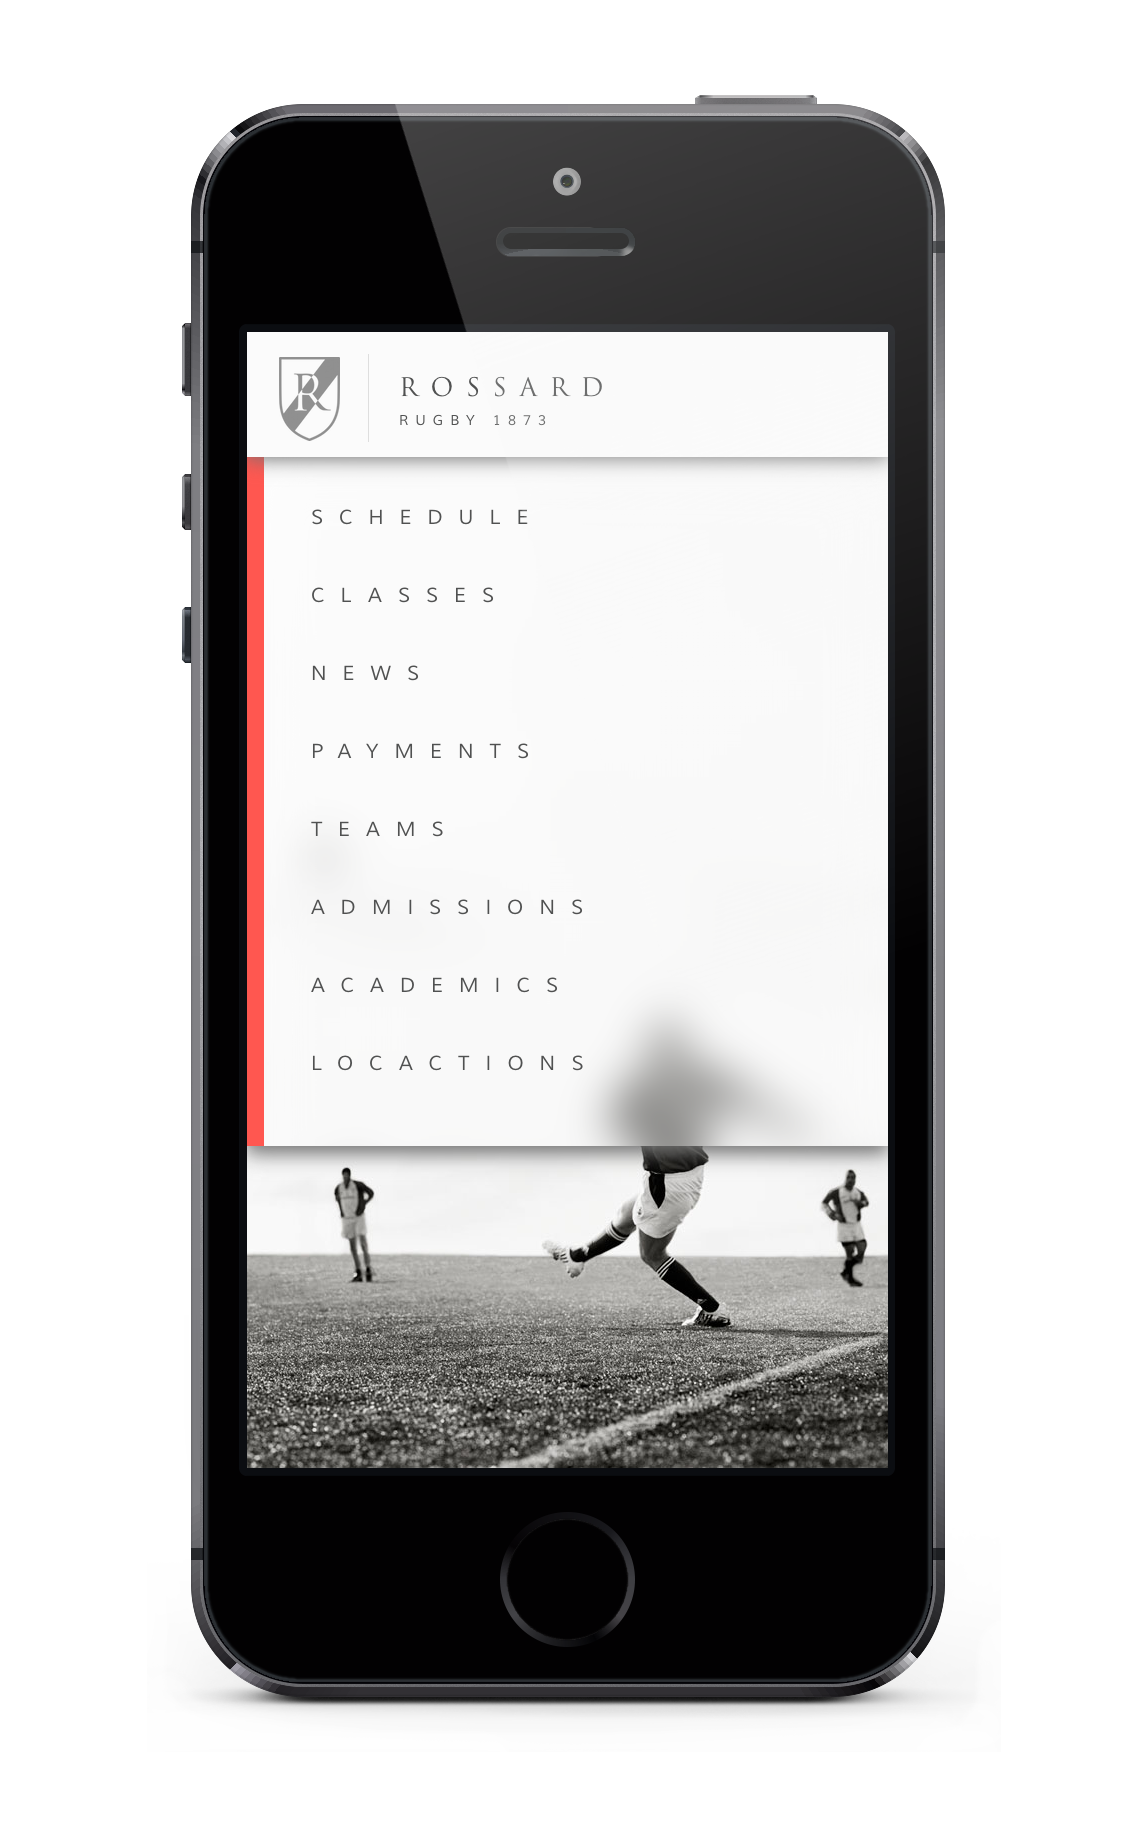 Rossard iPhone App 3.png